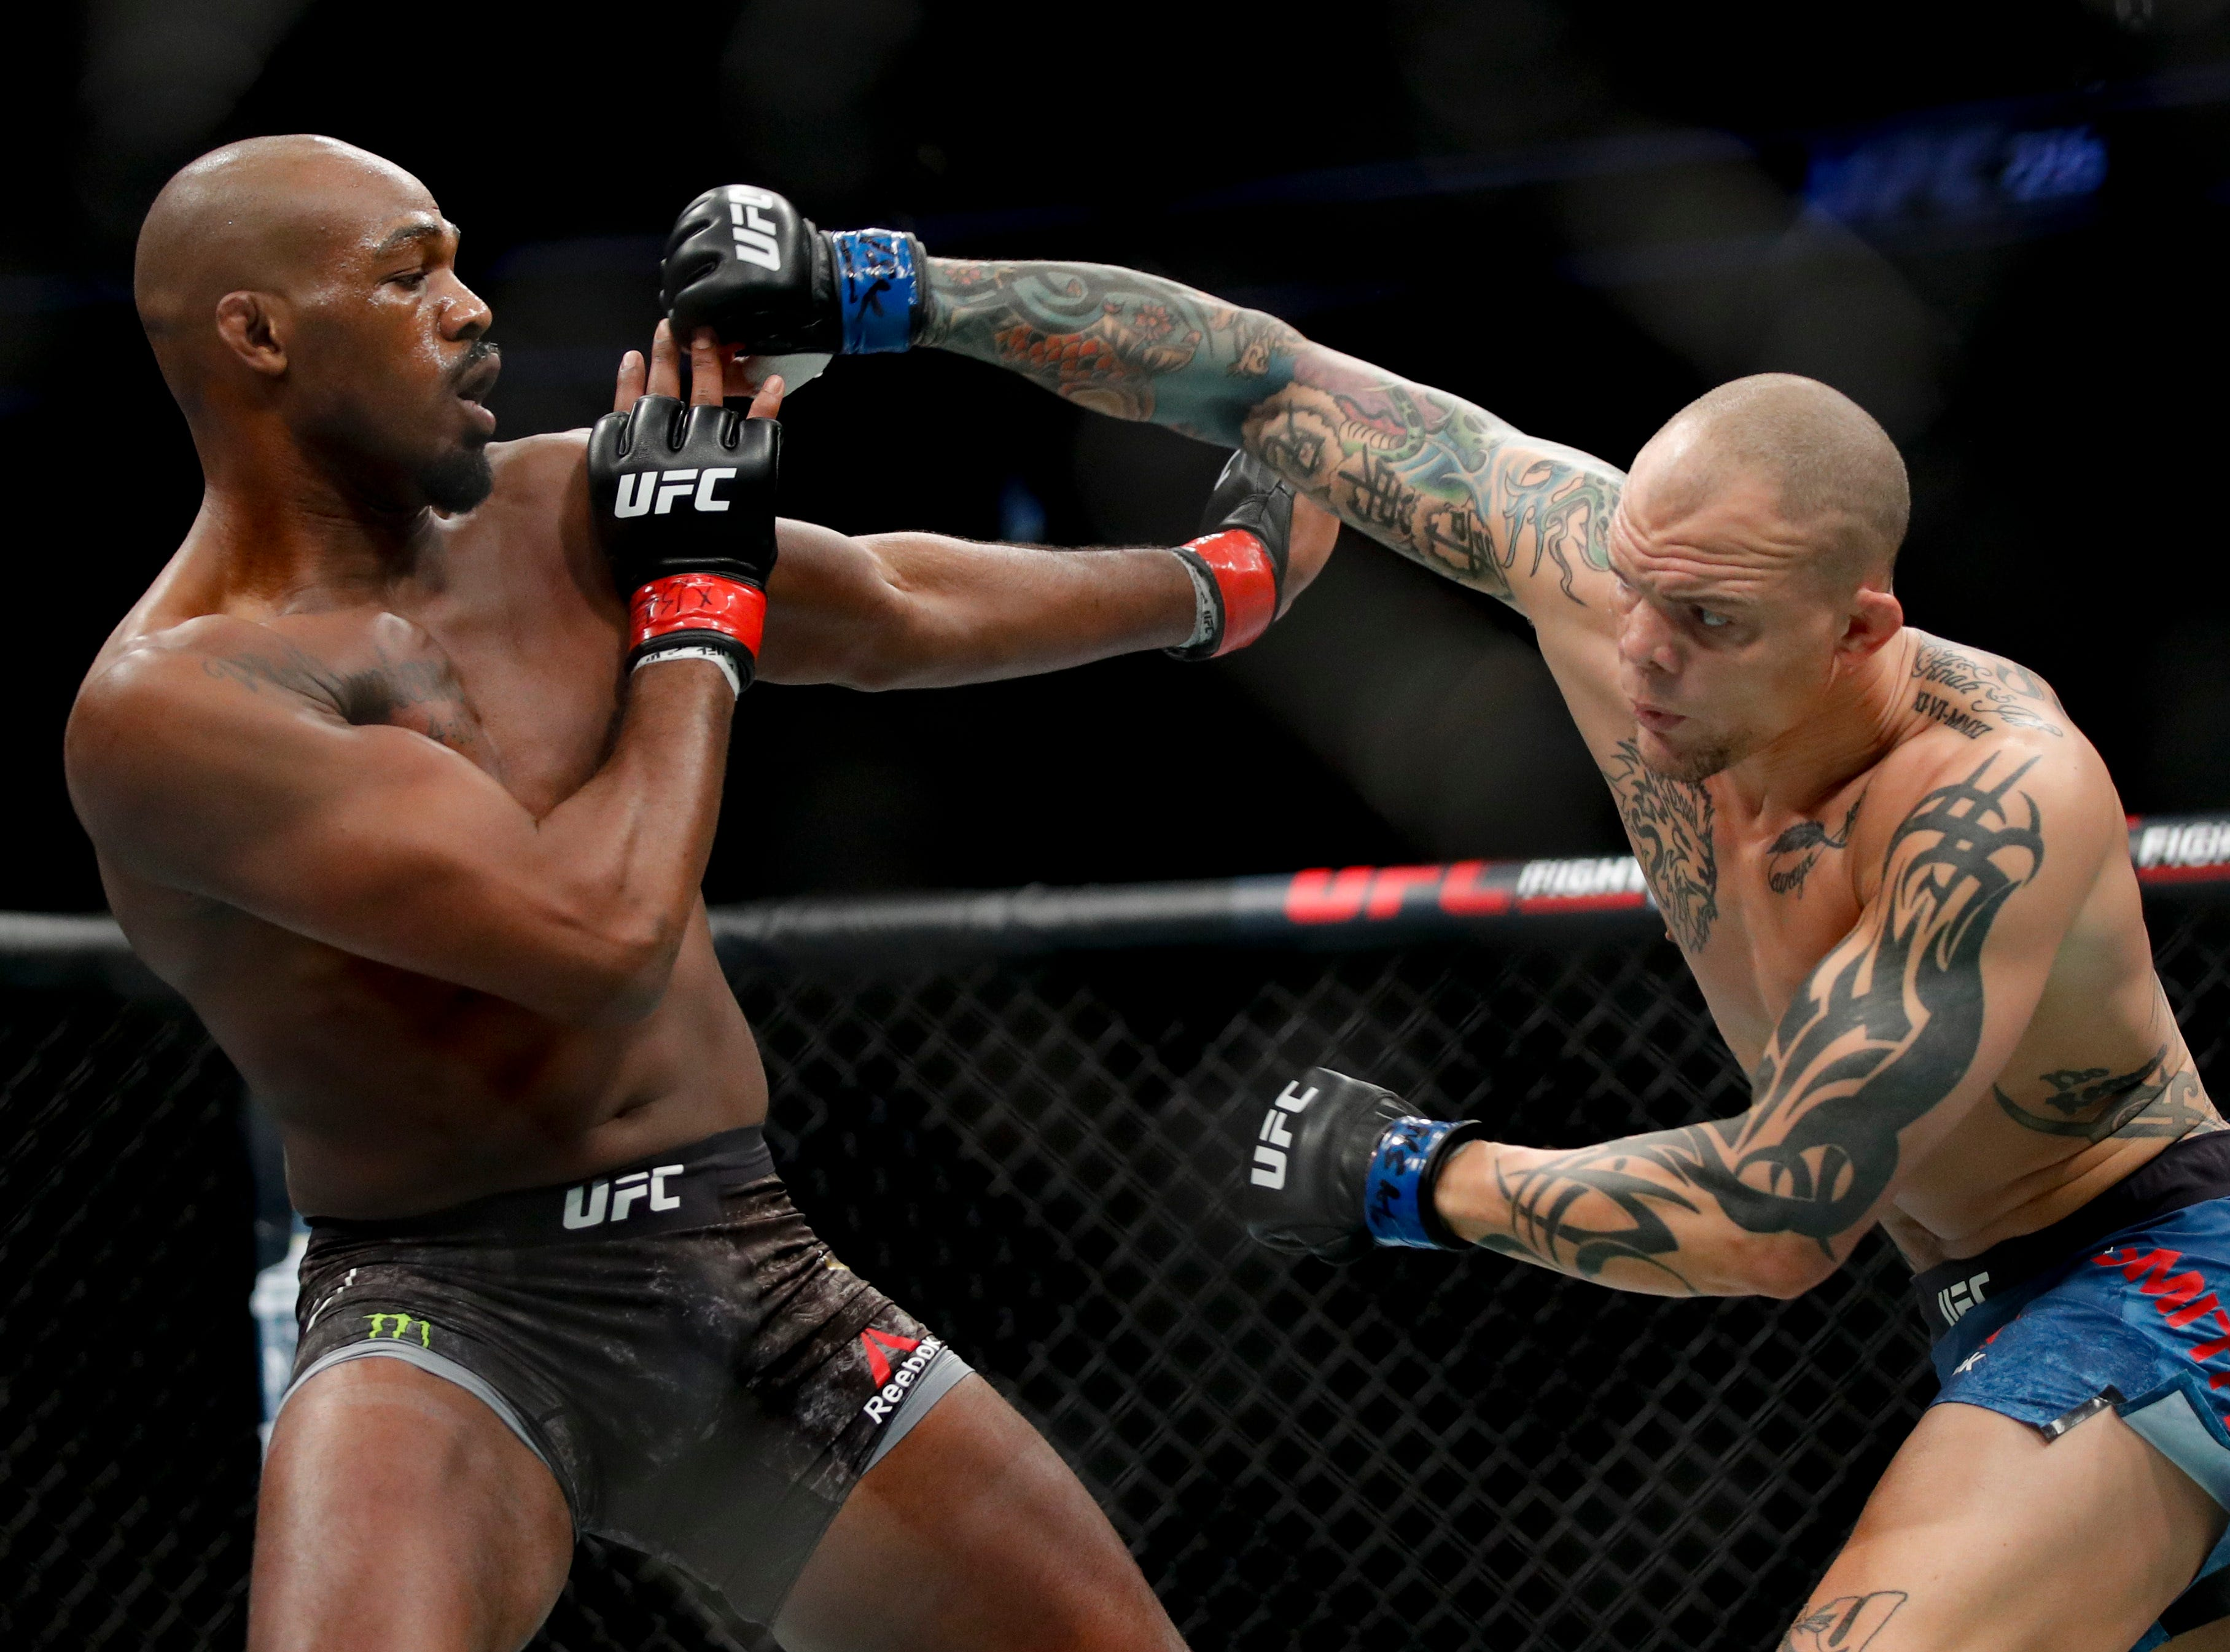 Jon Jones, left, fights Anthony Smith in a light heavyweight mixed martial arts title bout at UFC 235, Saturday, March 2, 2019, in Las Vegas. (AP Photo/John Locher)